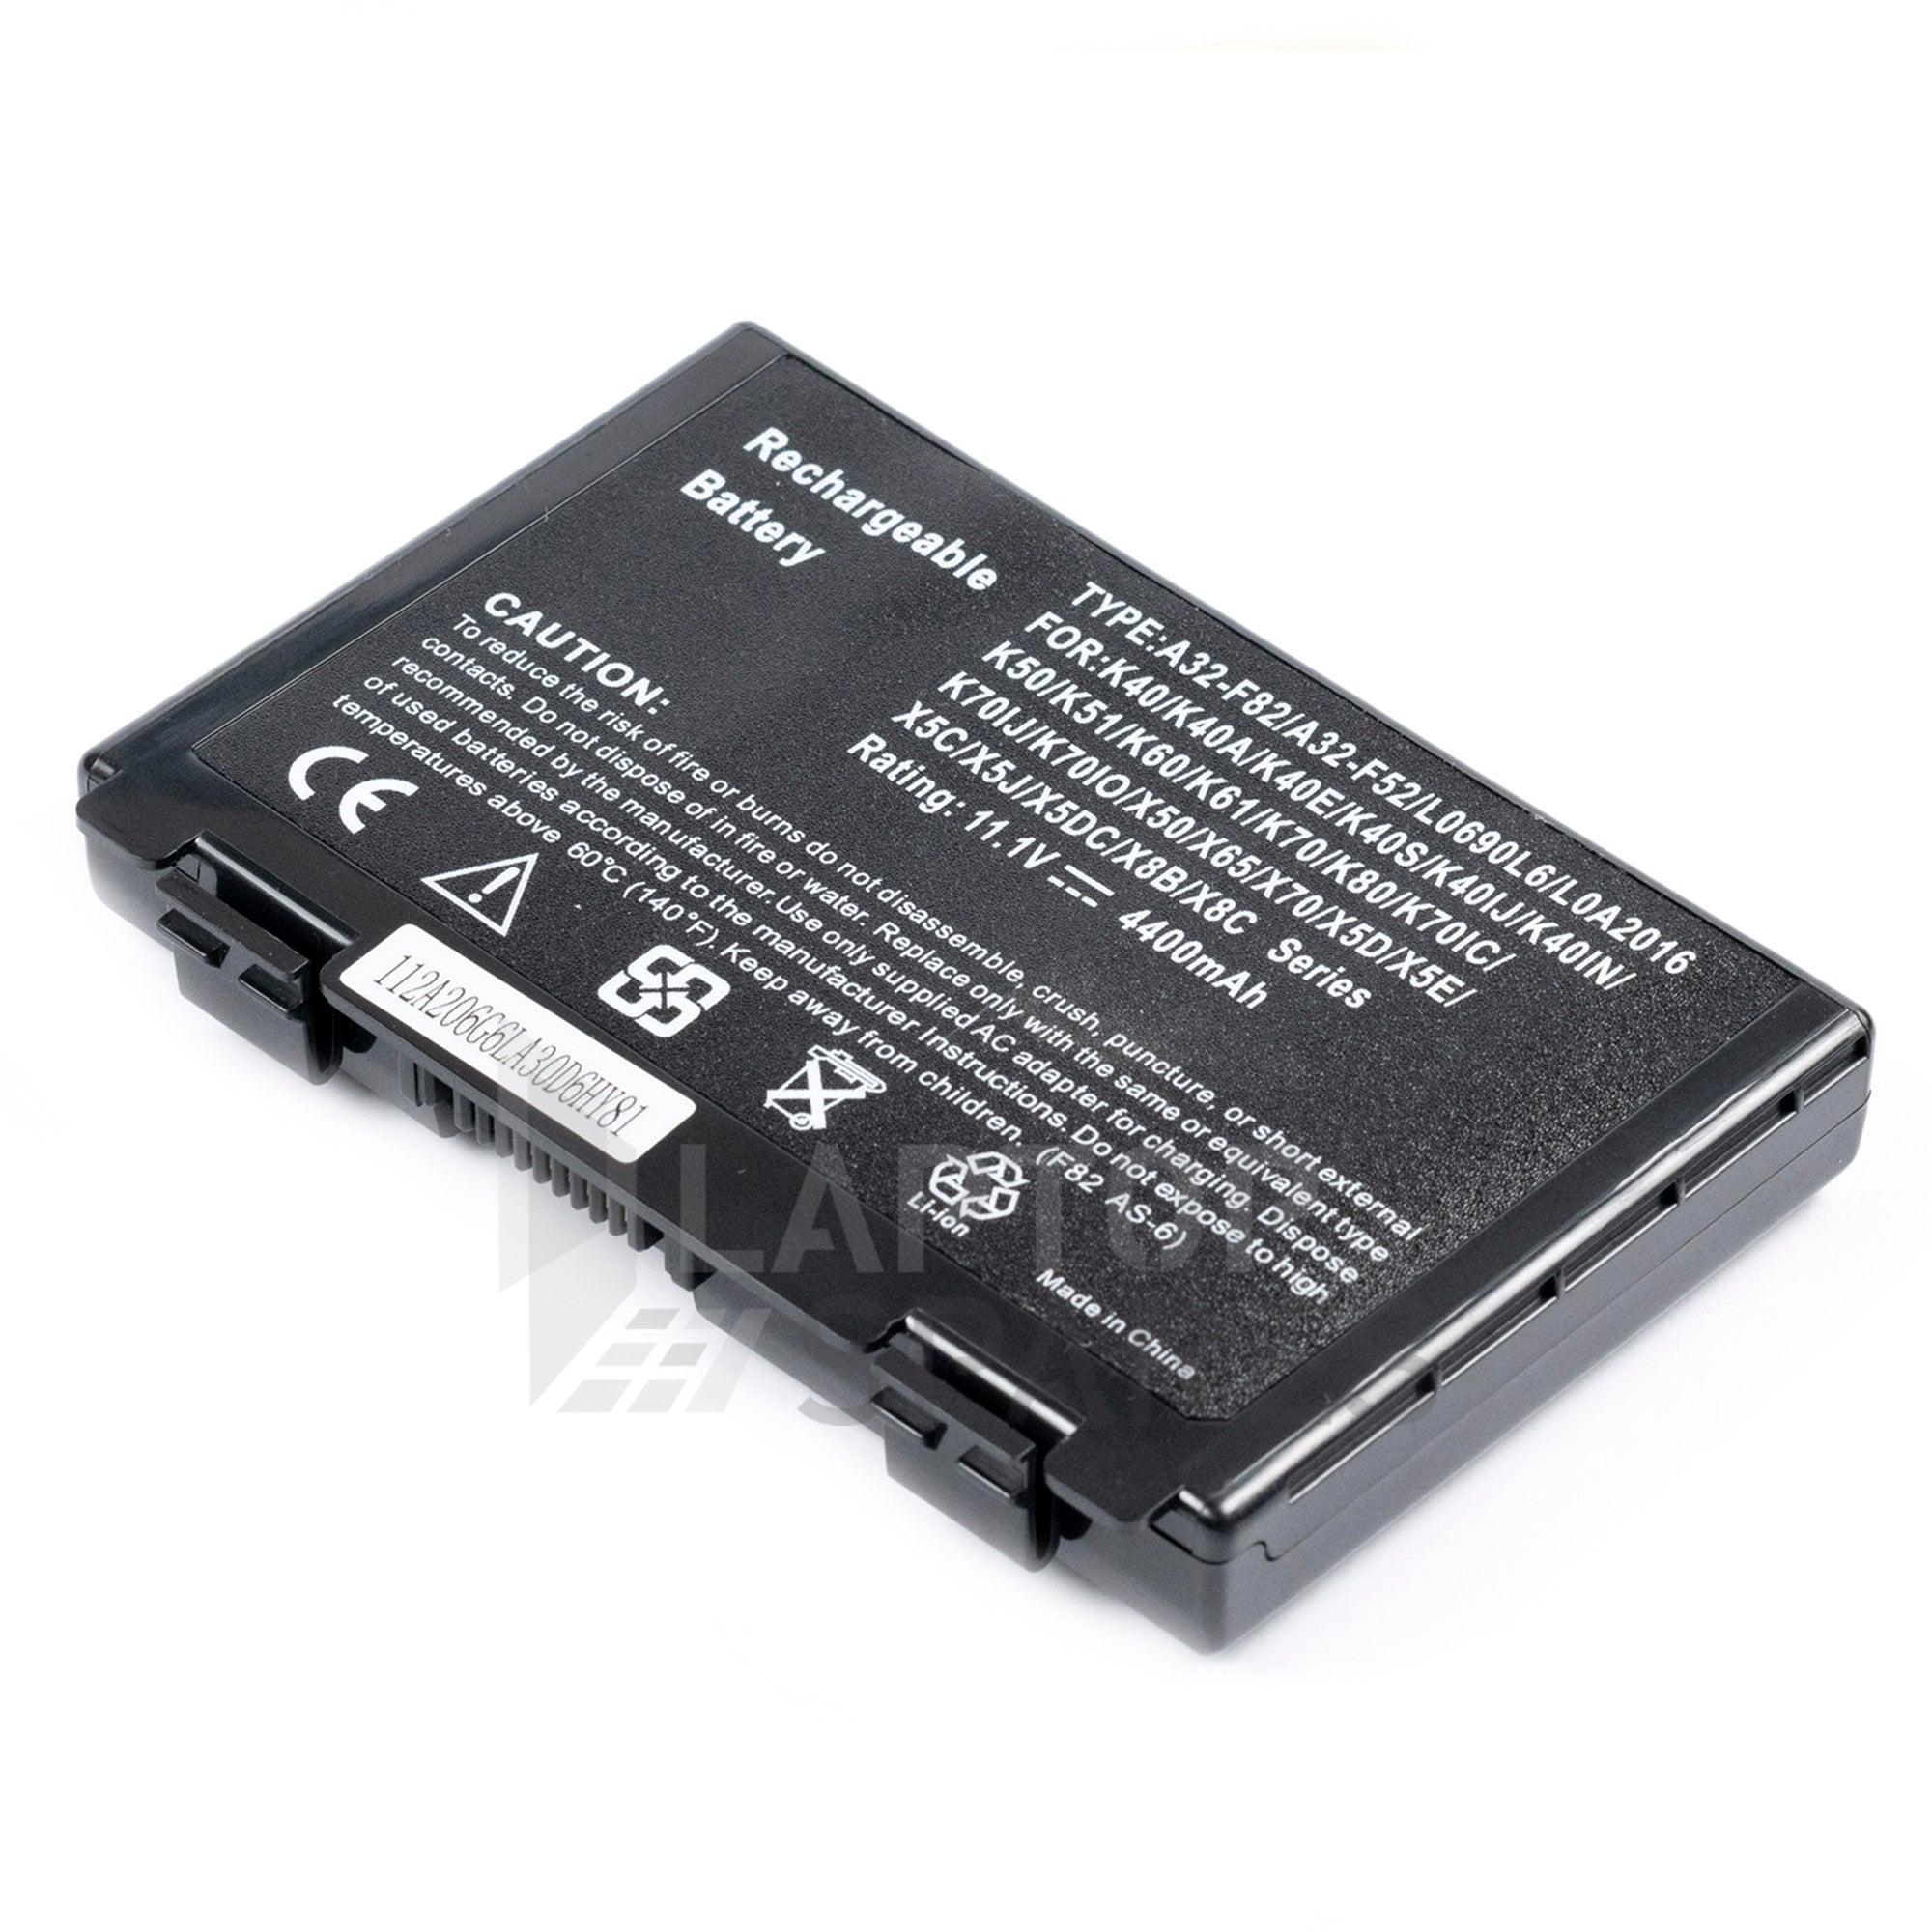 Asus F82 A32-F82 NoteBook 4400mAh 6 Cell Battery